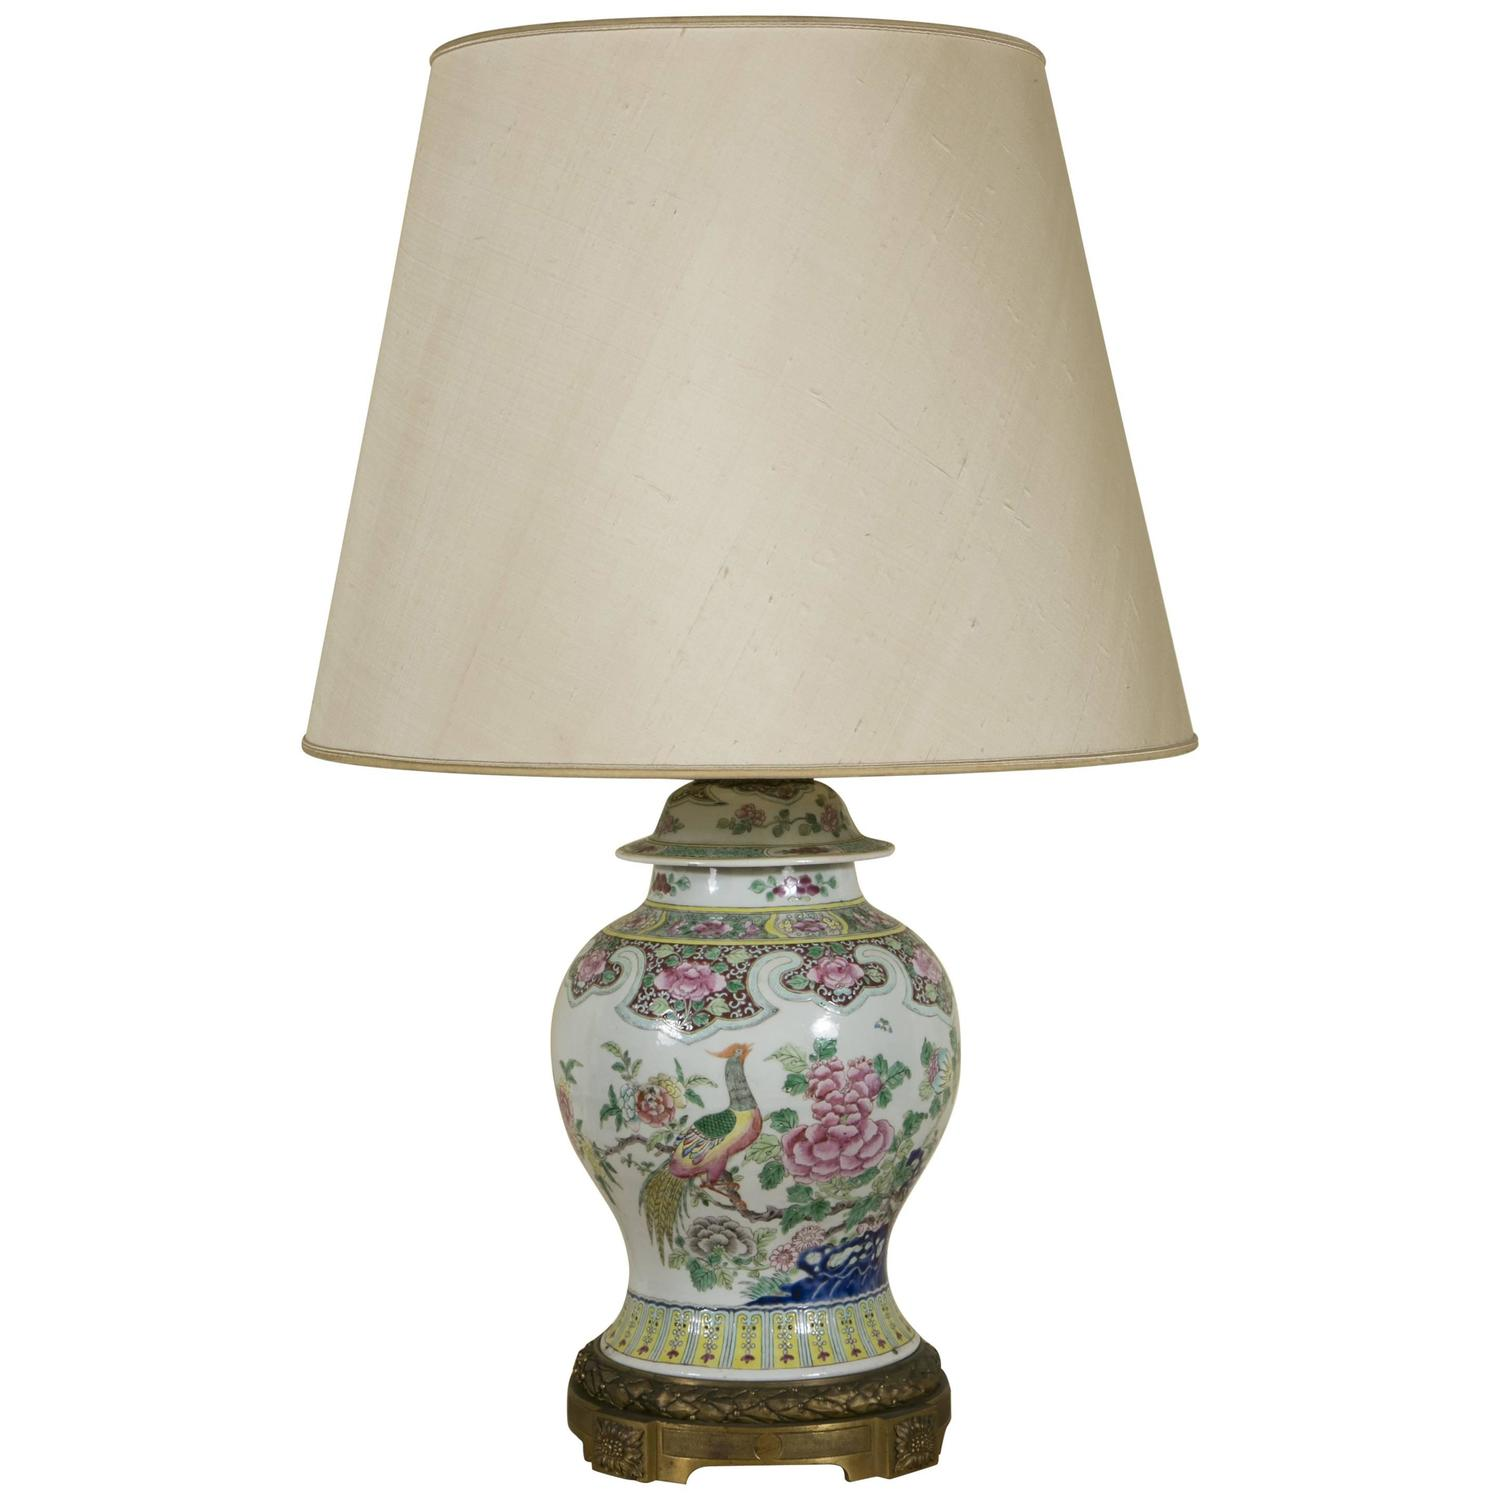 French Empire Table Lamp in Gilt and Patinated Bronze at 1stdibs